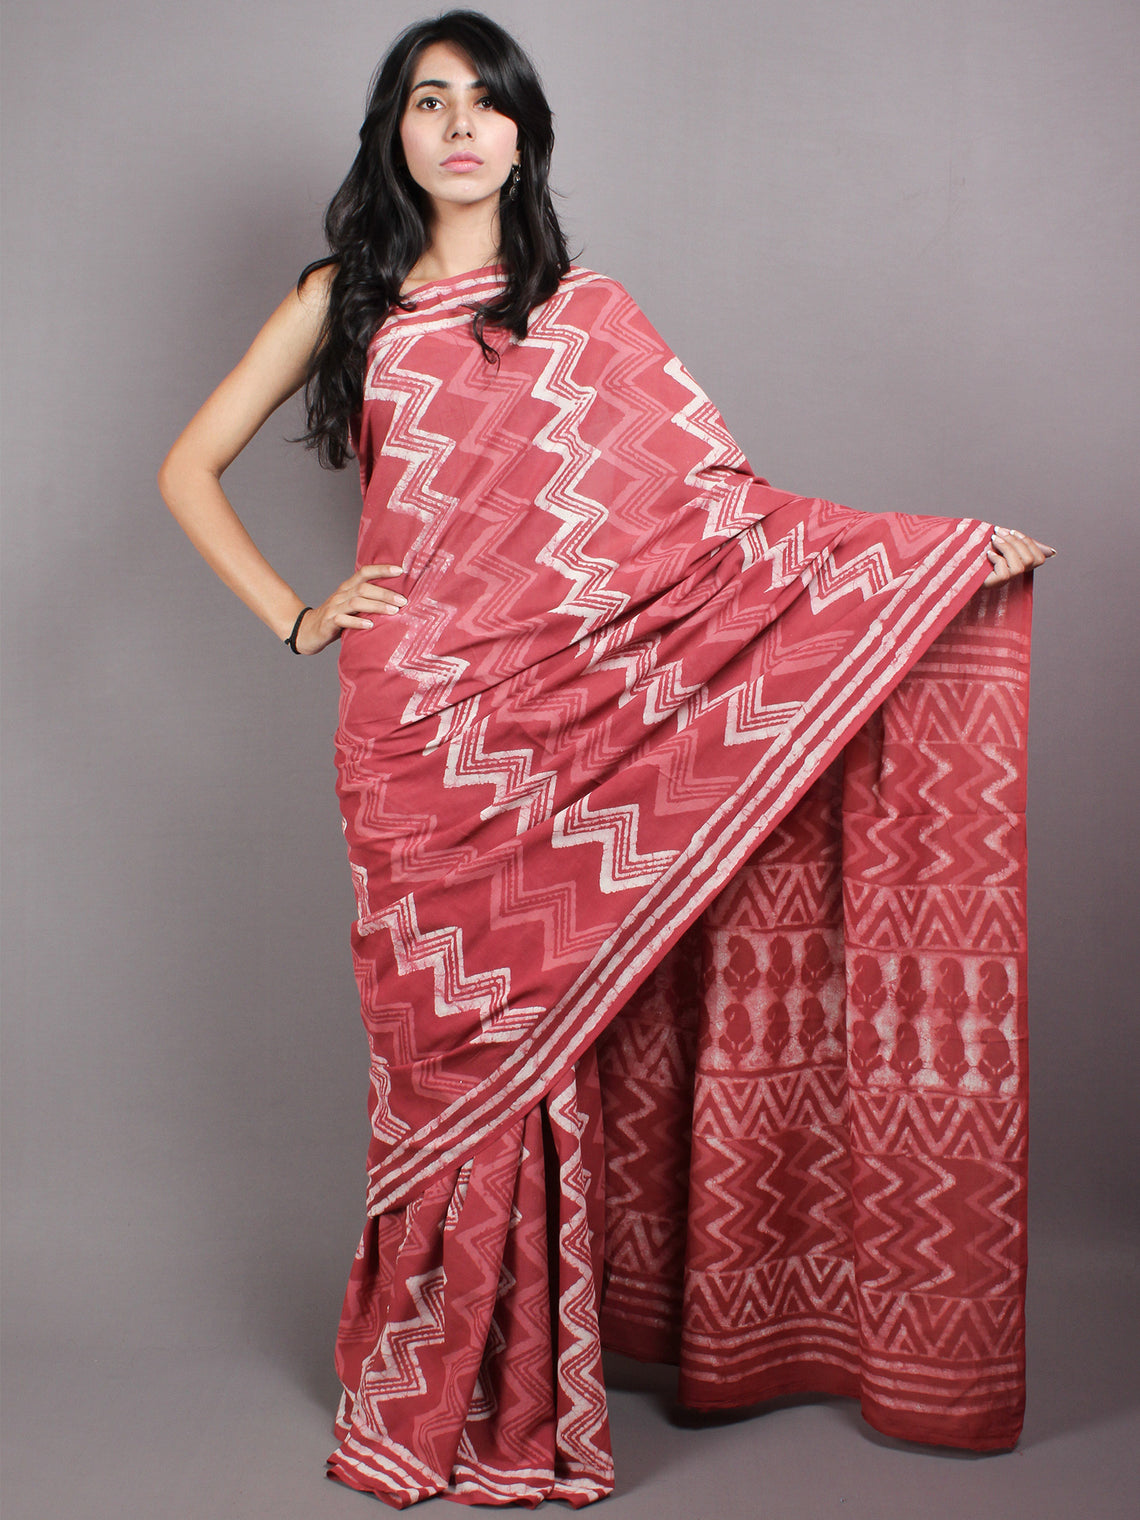 Dark Peach Beige Hand Block Printed in Natural Colors Cotton Mul Saree - S03170428